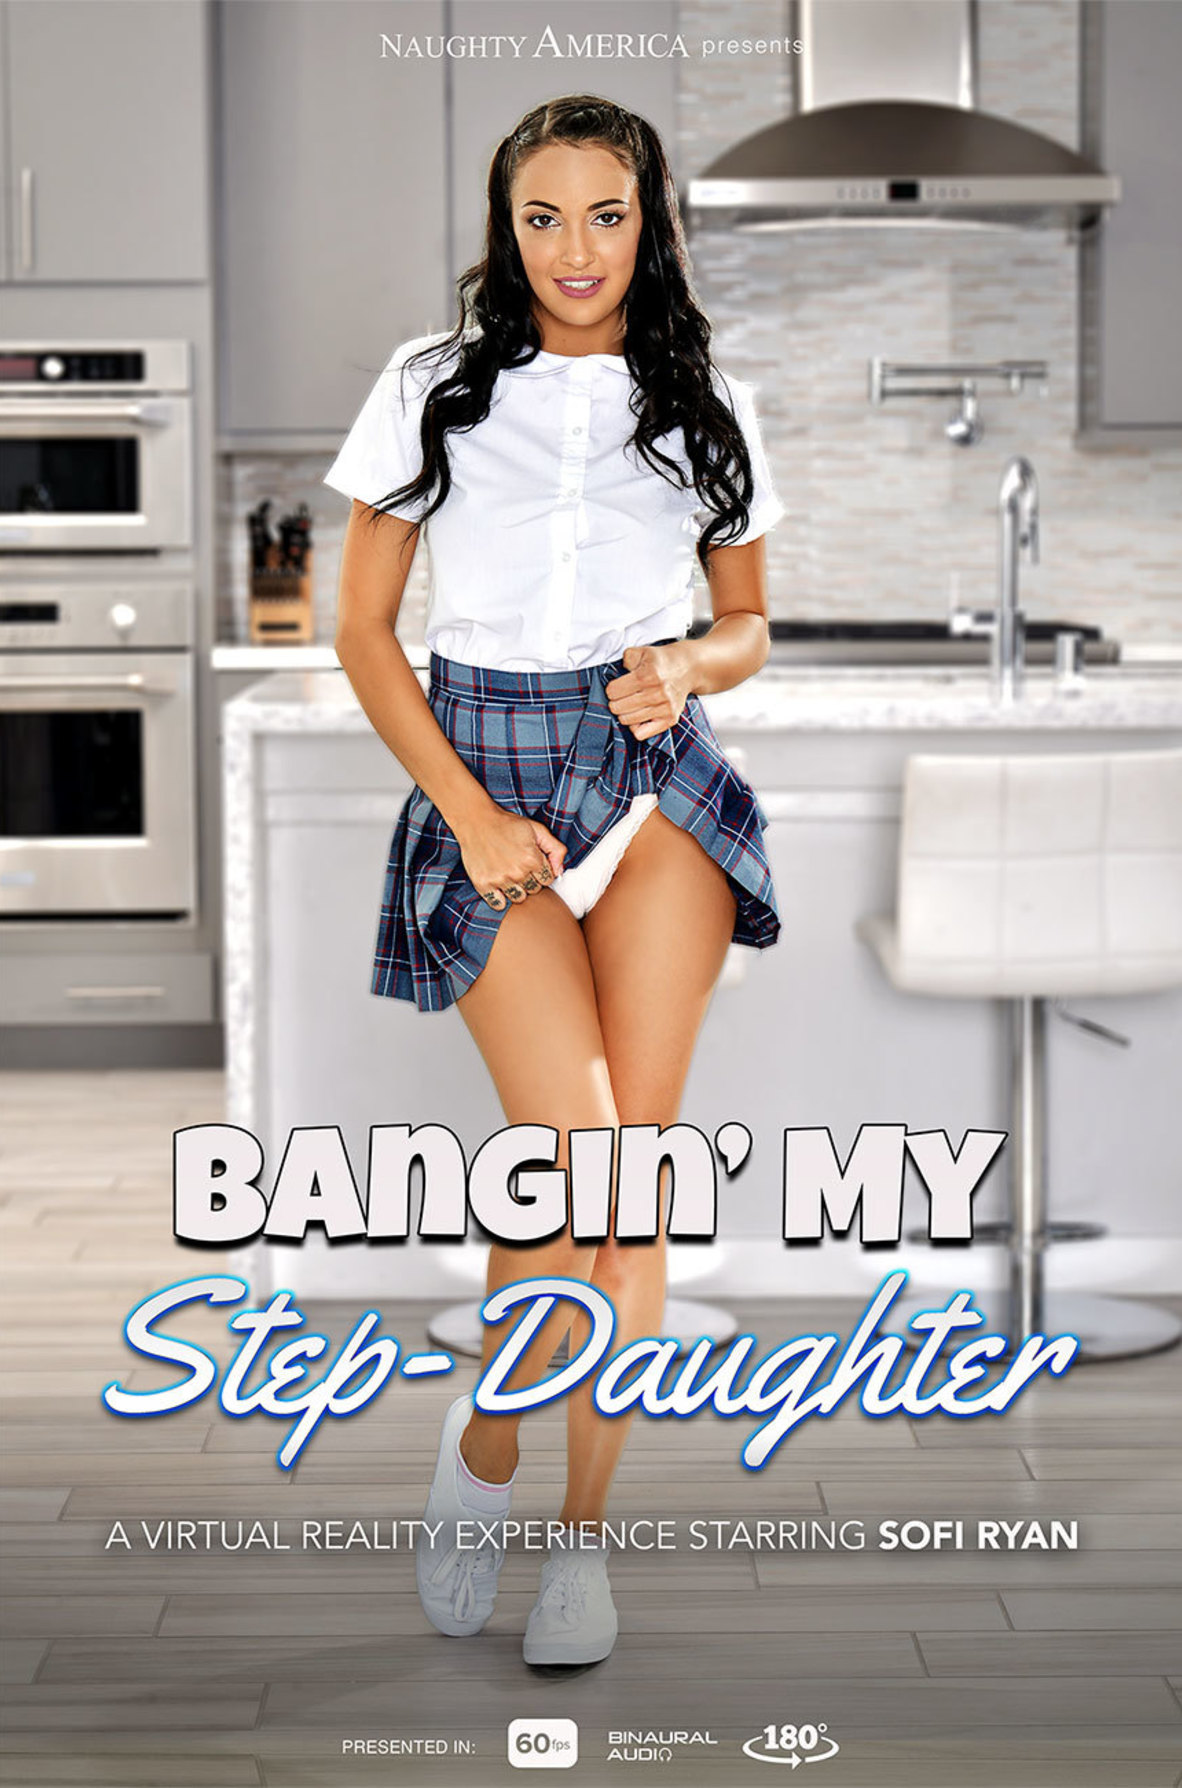 Watch Sofi Ryan and Bambino VR video in Naughty America